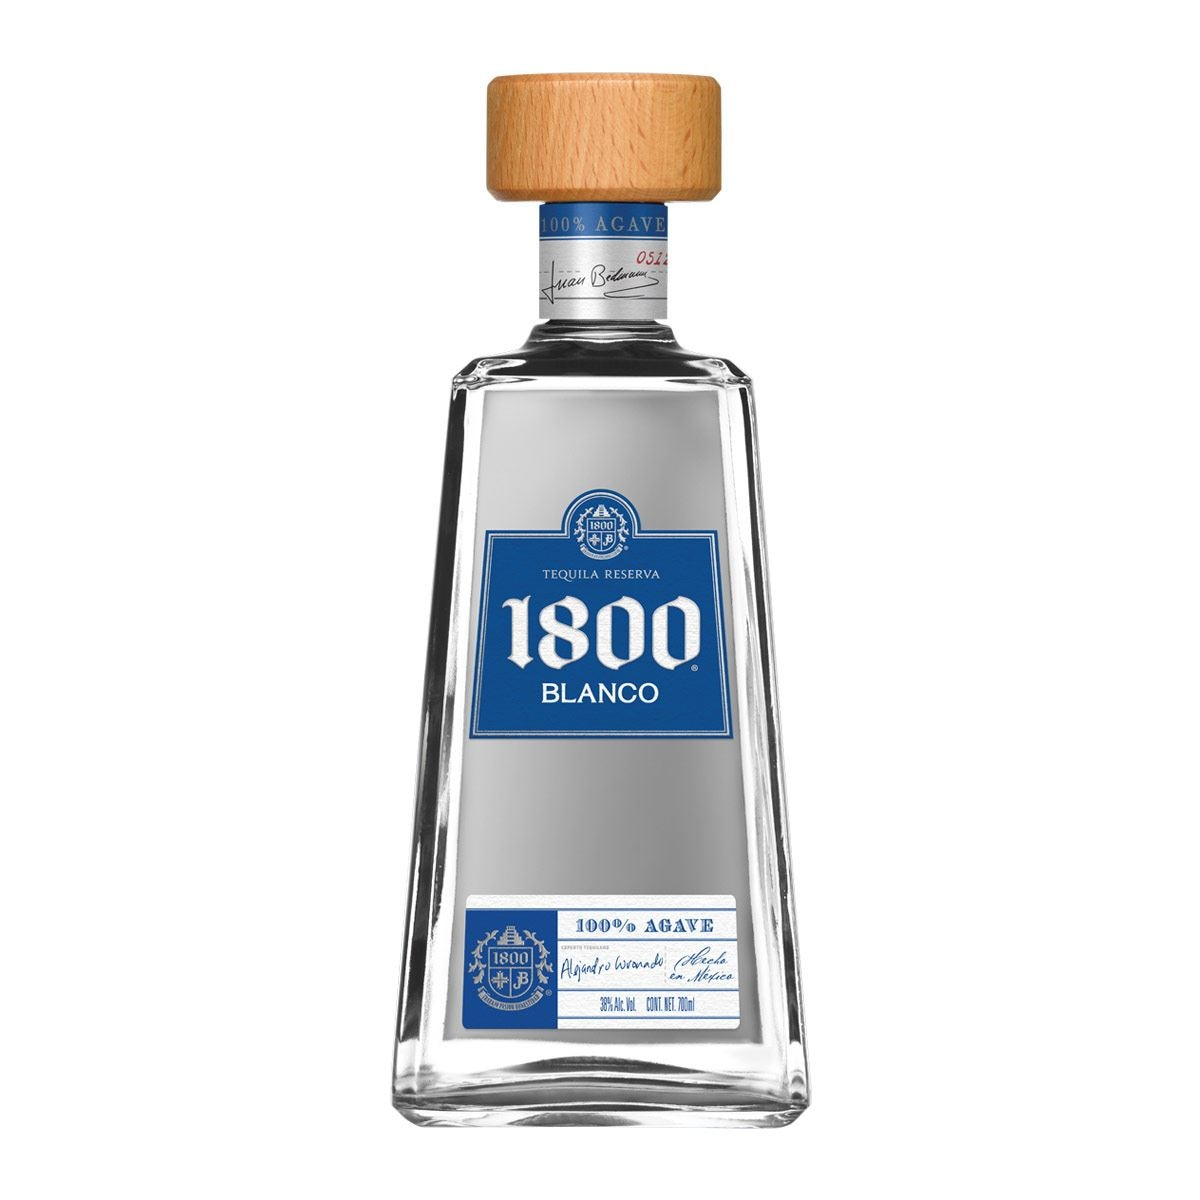 Tequila 1800 Blanco 700 ml